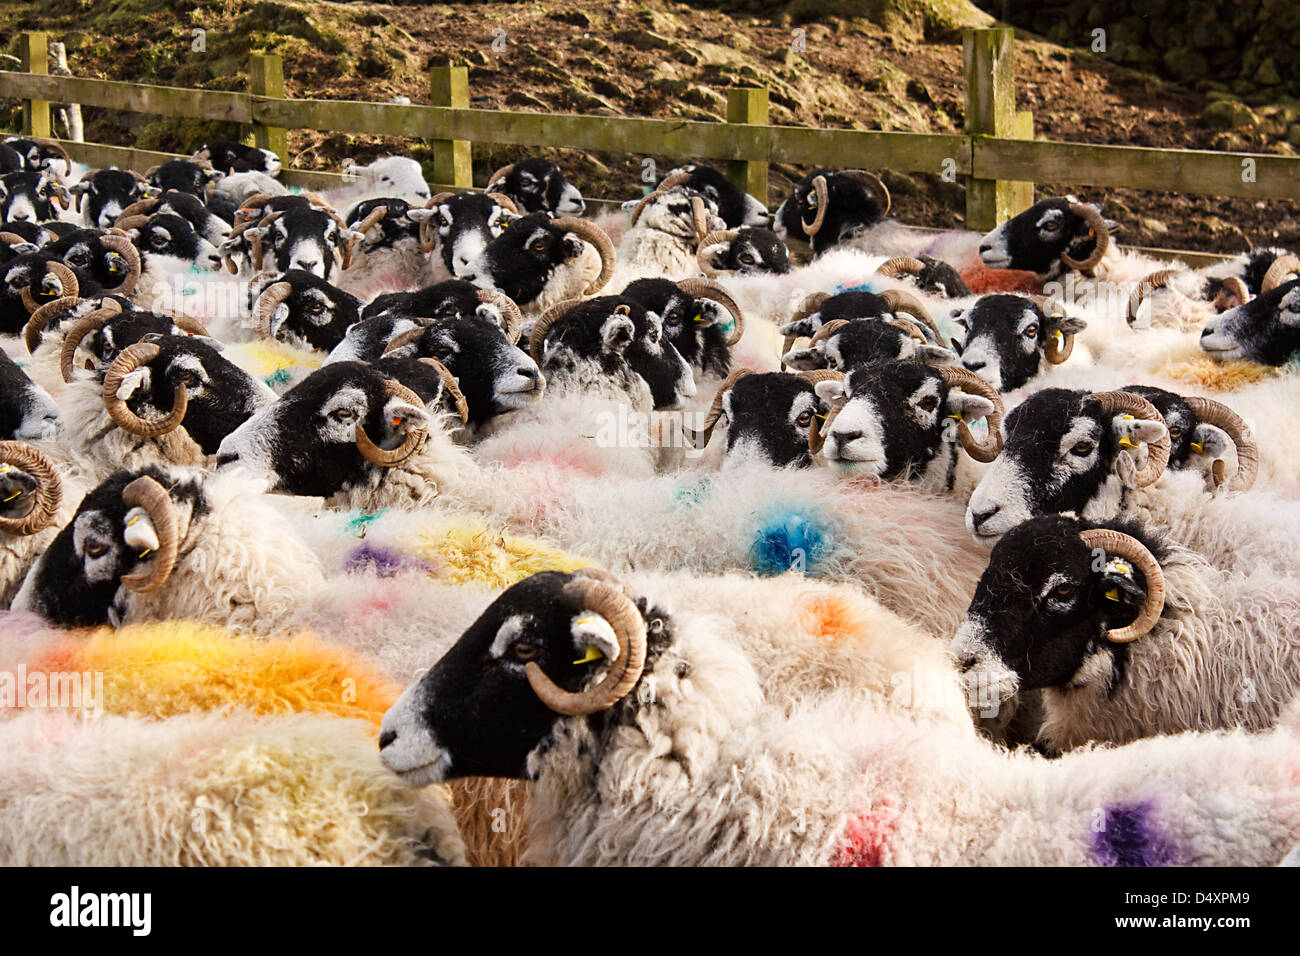 Herd of Swaledale sheep a common domestic farm animal all stock marked for identification before going to market - Stock Image